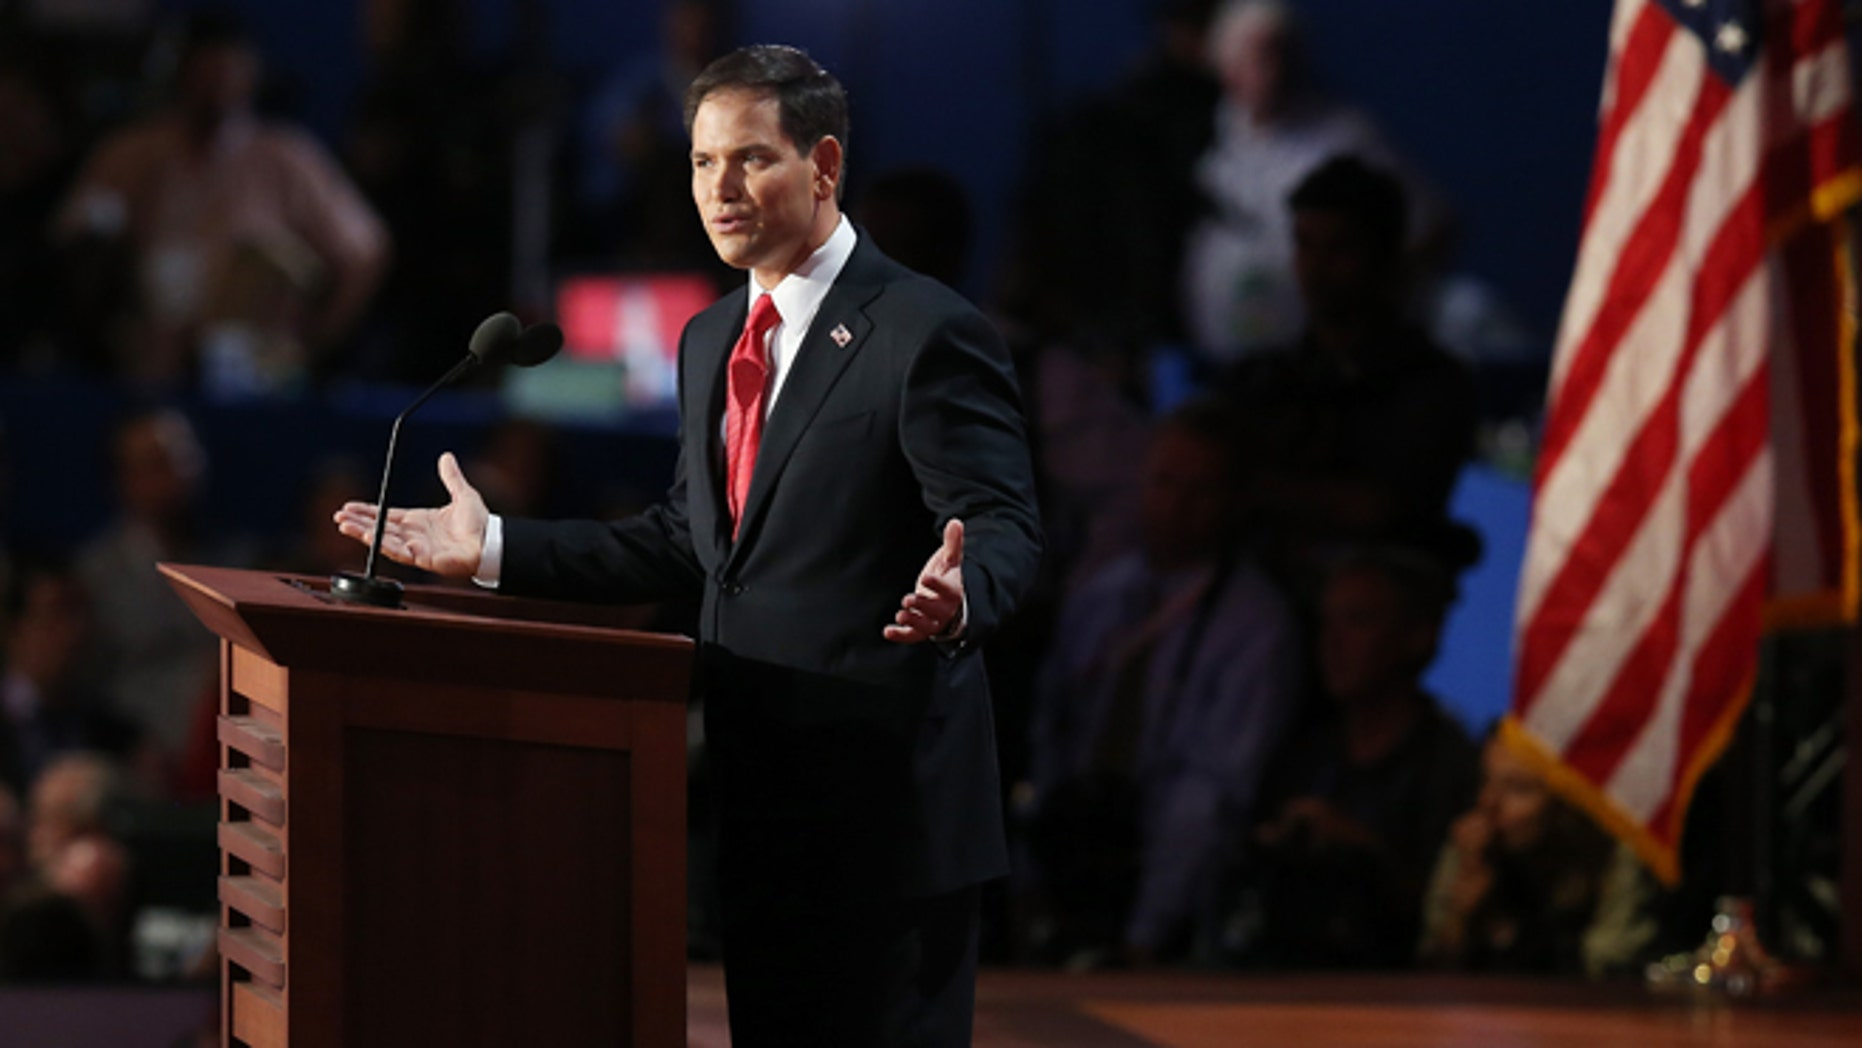 TAMPA, FL - AUGUST 30:  U.S. Senator Marco Rubio (FL) speaks during the final day of the Republican National Convention at the Tampa Bay Times Forum on August 30, 2012 in Tampa, Florida. Former Massachusetts Gov. Mitt Romney was nominated as the Republican presidential candidate during the RNC which will conclude today.  (Photo by Scott Olson/Getty Images)